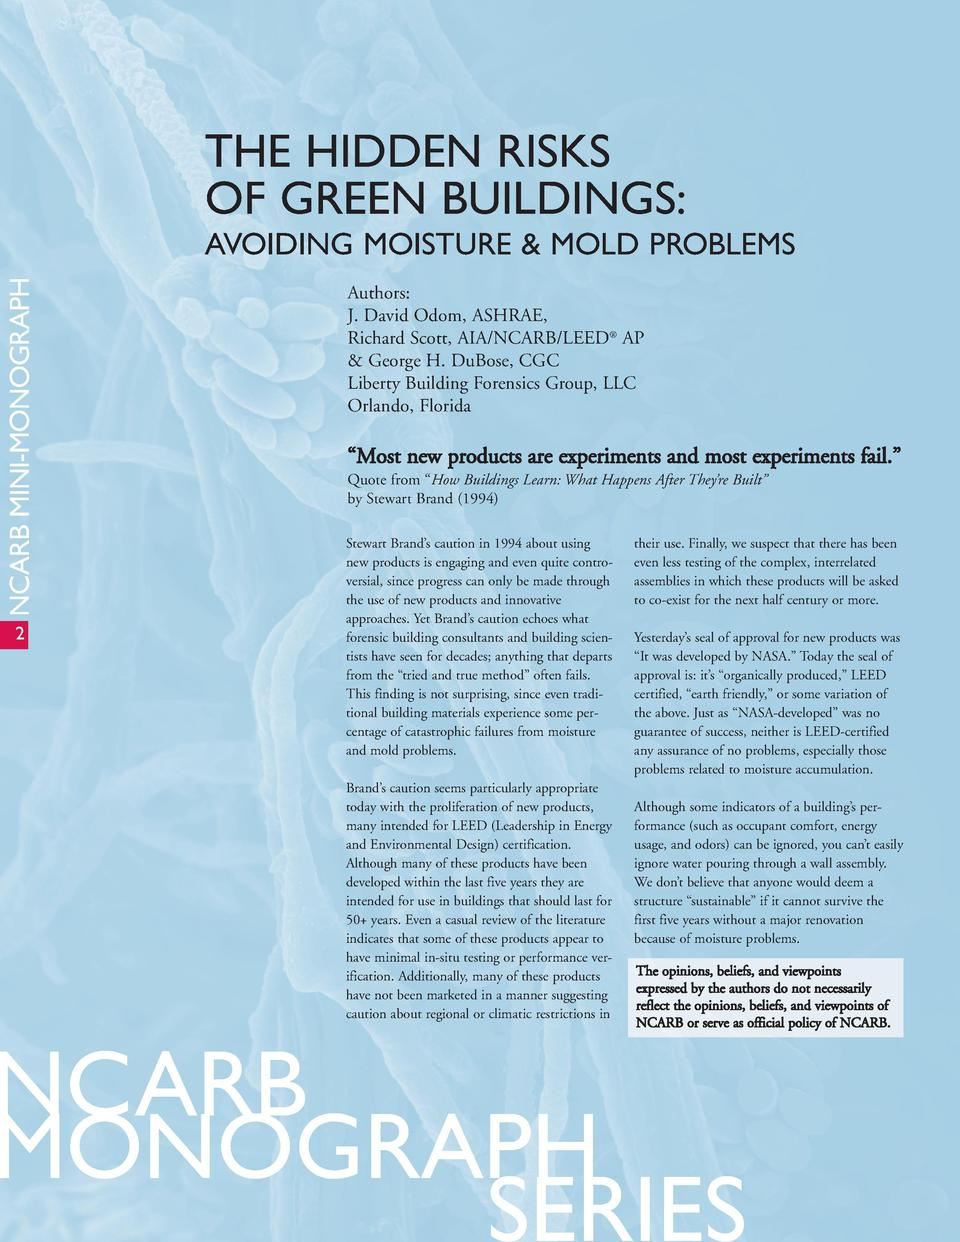 THE HIDDEN RISKS OF GREEN BUILDINGS  NCARB MINI-MONOGRAPH  AVOIDING MOISTURE   MOLD PROBLEMS  2  Authors  J. David Odom, A...